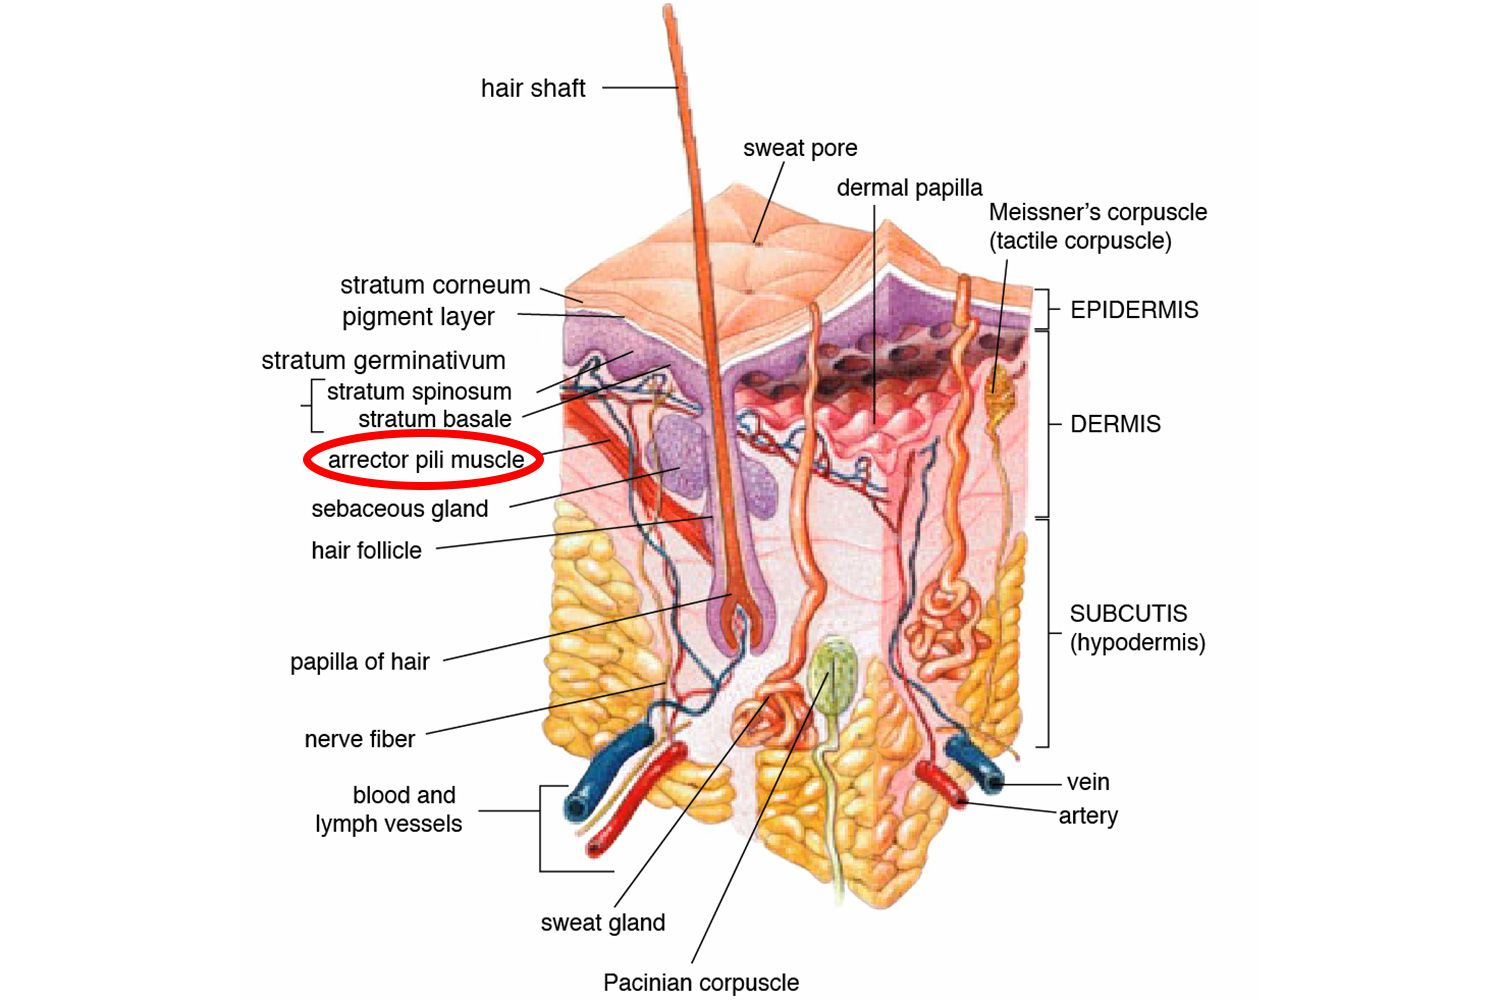 The 4 Vestigial Structures Found In Humans Human Body Muscle Anatomy Diagram Humananatomychartinfo With No Fur To Pull Arrector Pili Is Us Gov Wikimedia Commons Public Domain When